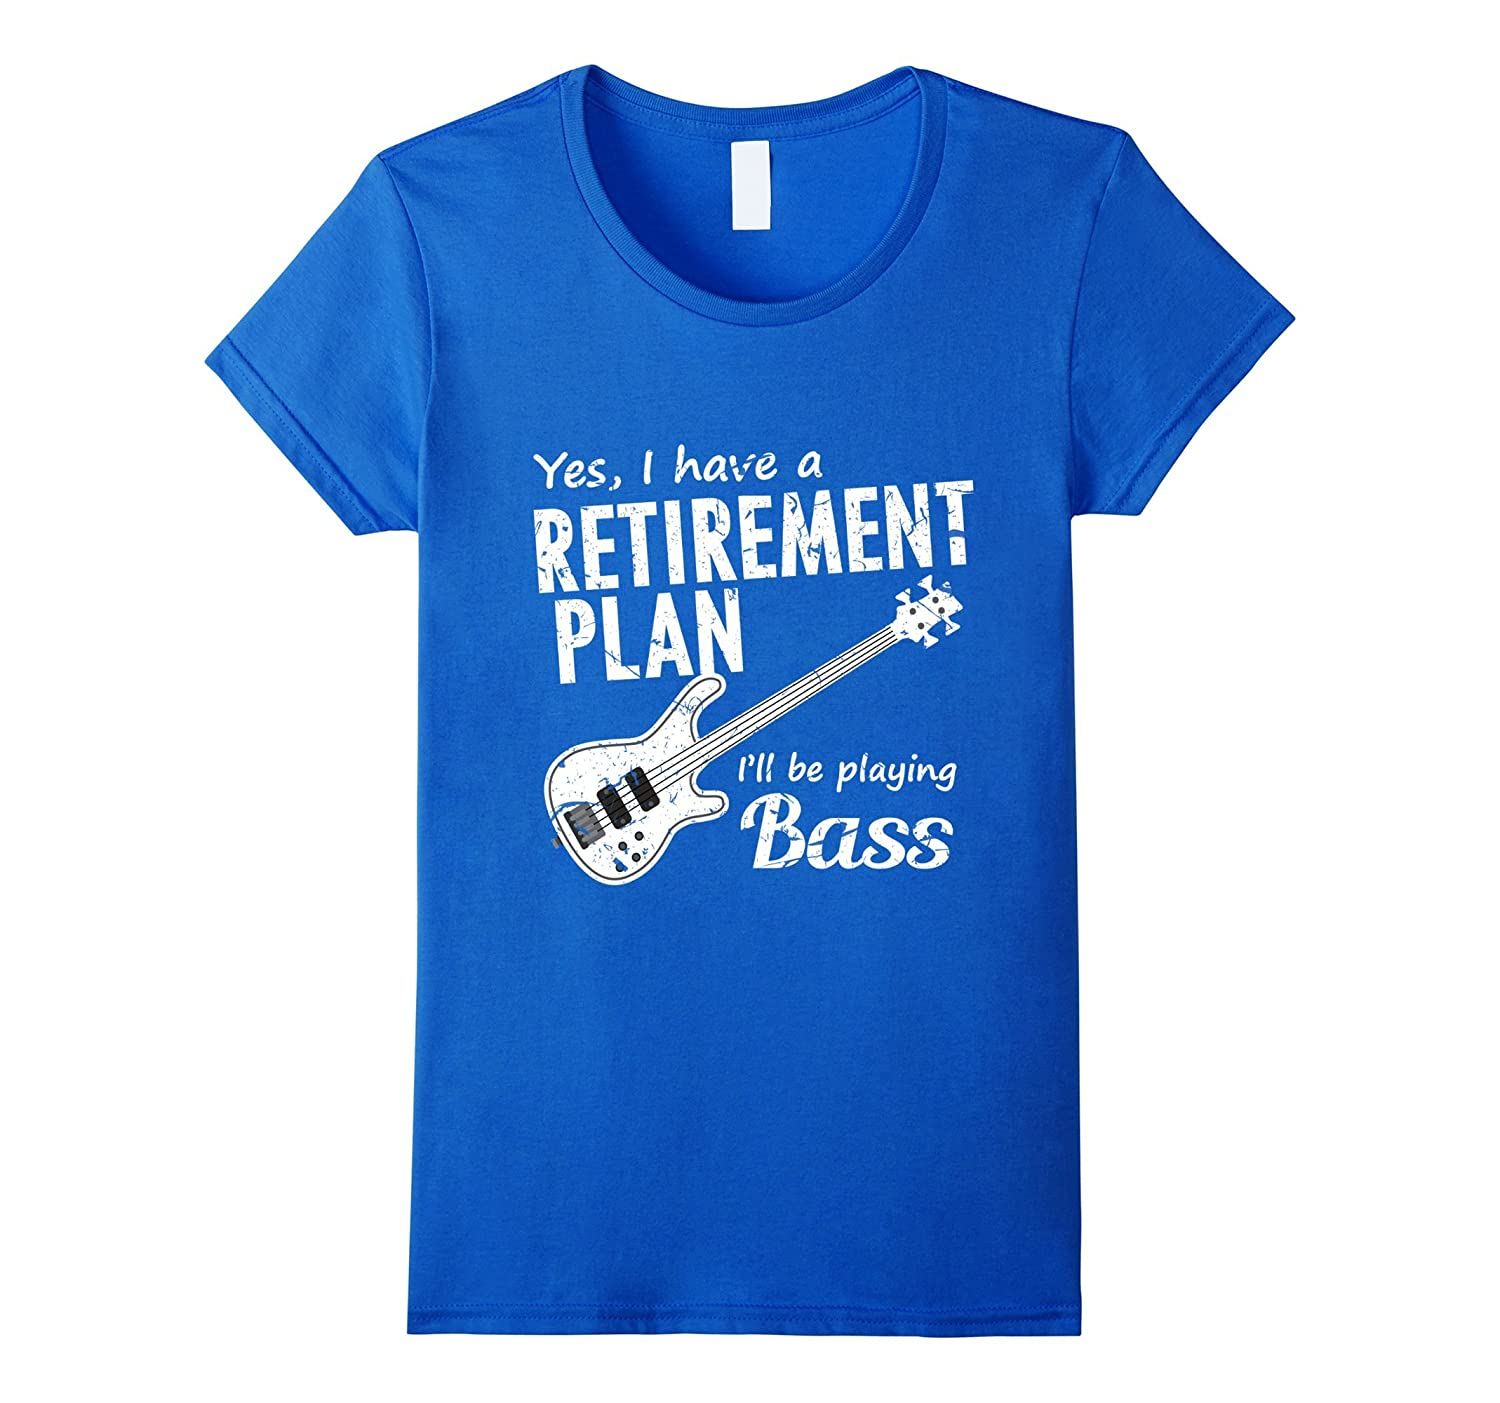 Bass Player T-shirt, Yes I Have a Retirement Plan Shirt